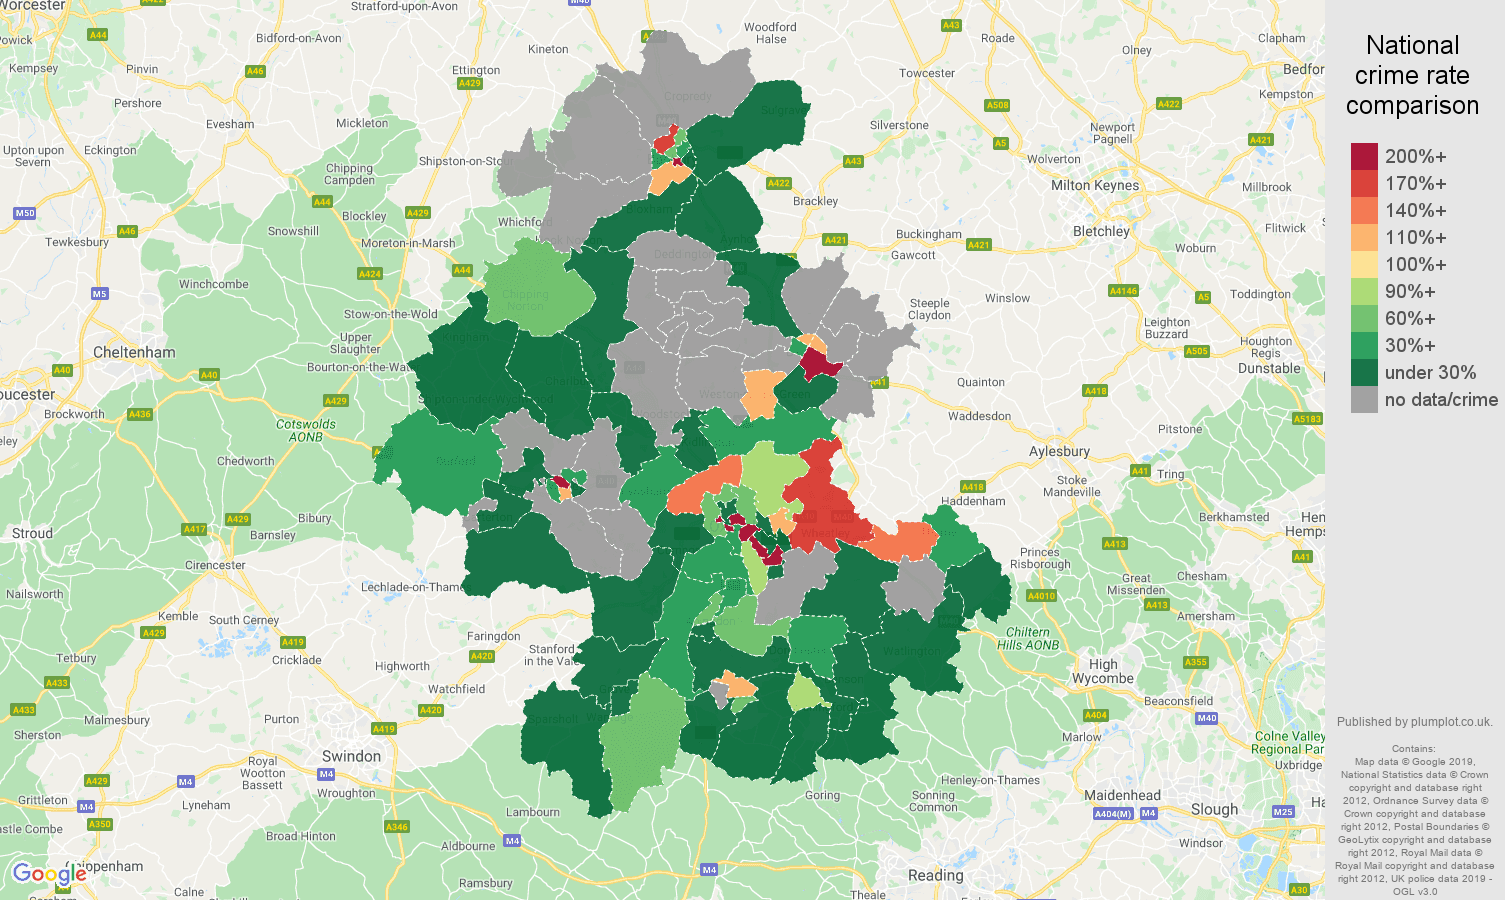 Oxford shoplifting crime rate comparison map